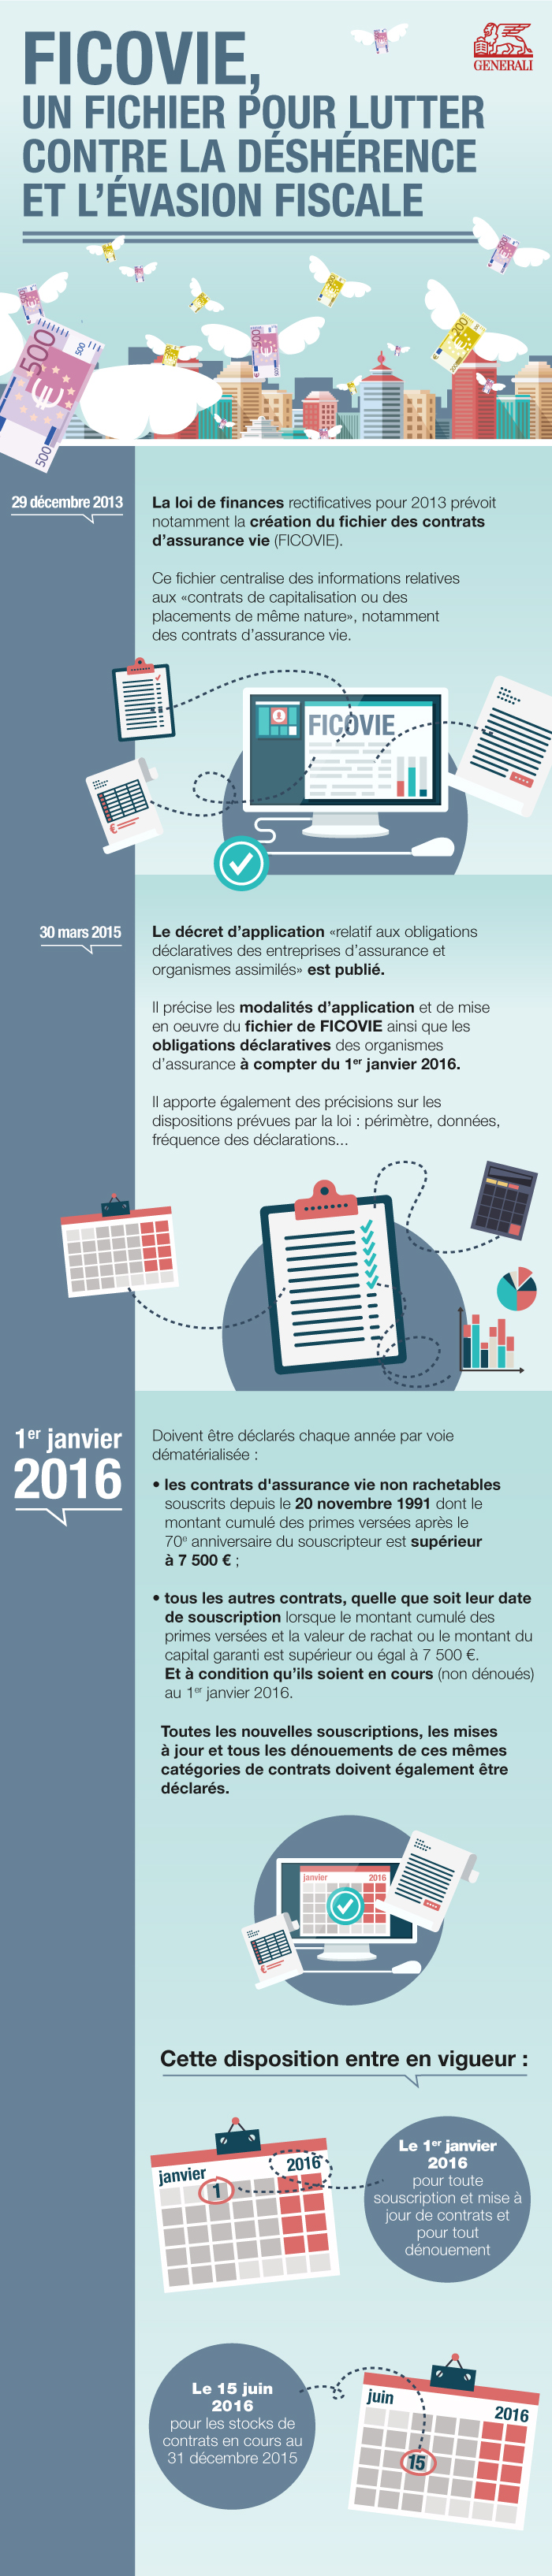 Infographie dispositif Ficovie